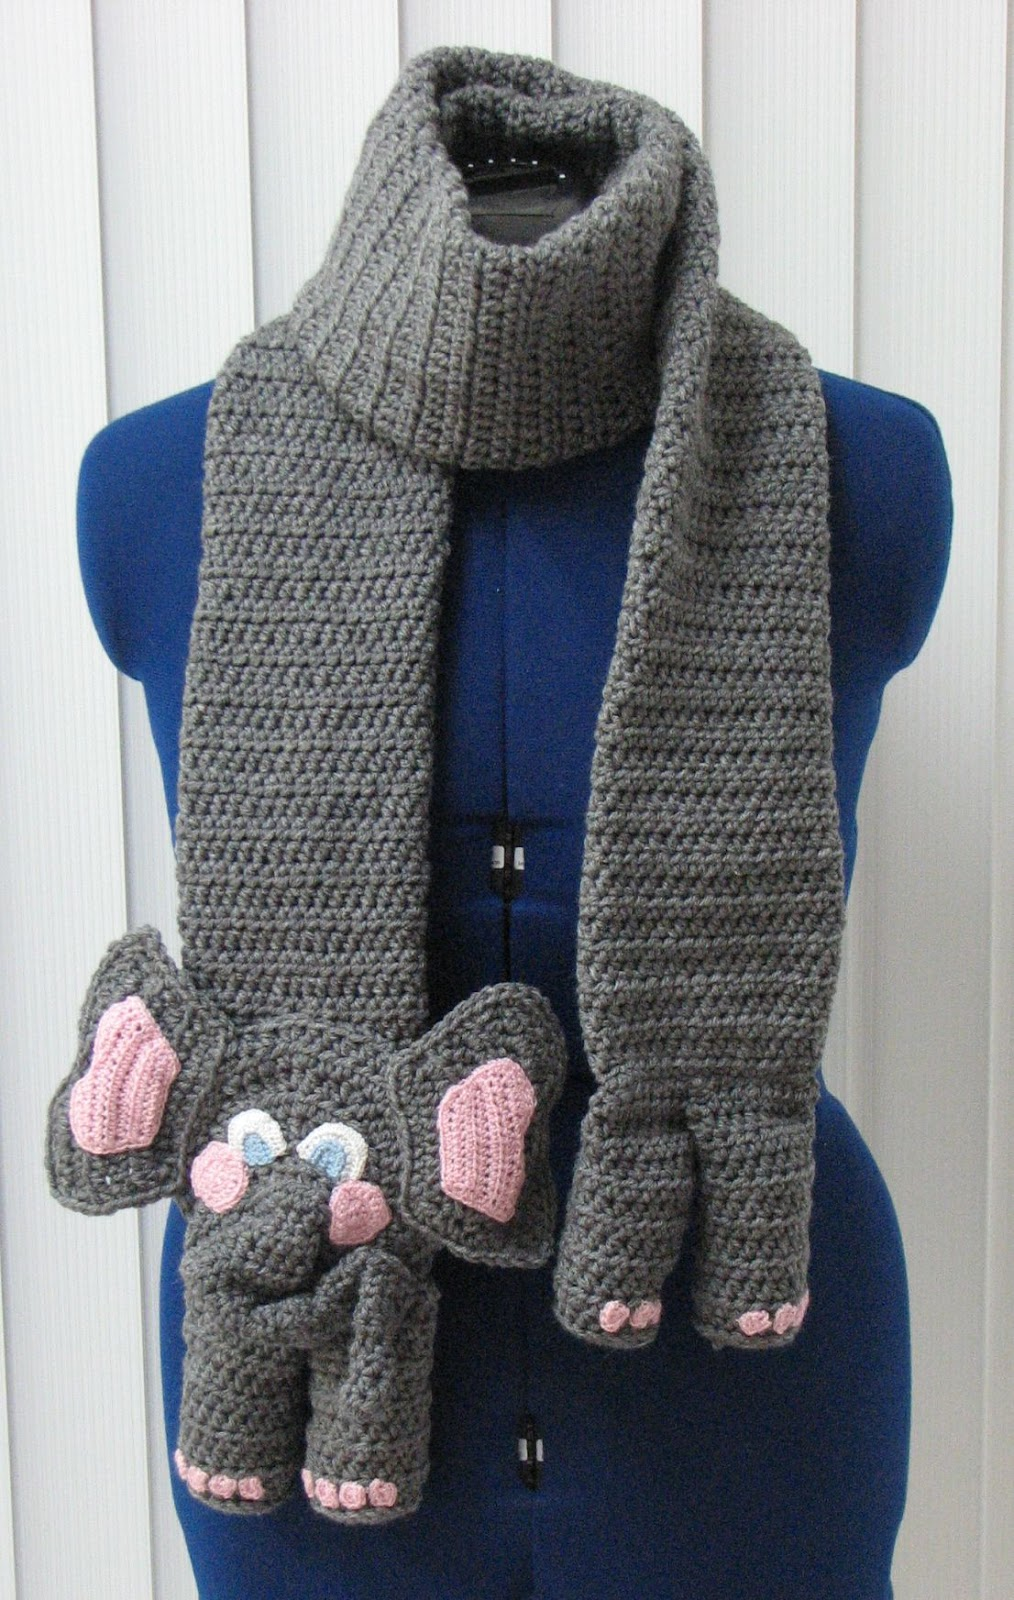 Free Crochet Patterns For Animal Scarves : Donnas Crochet Designs Blog of Free Patterns: Elephant ...